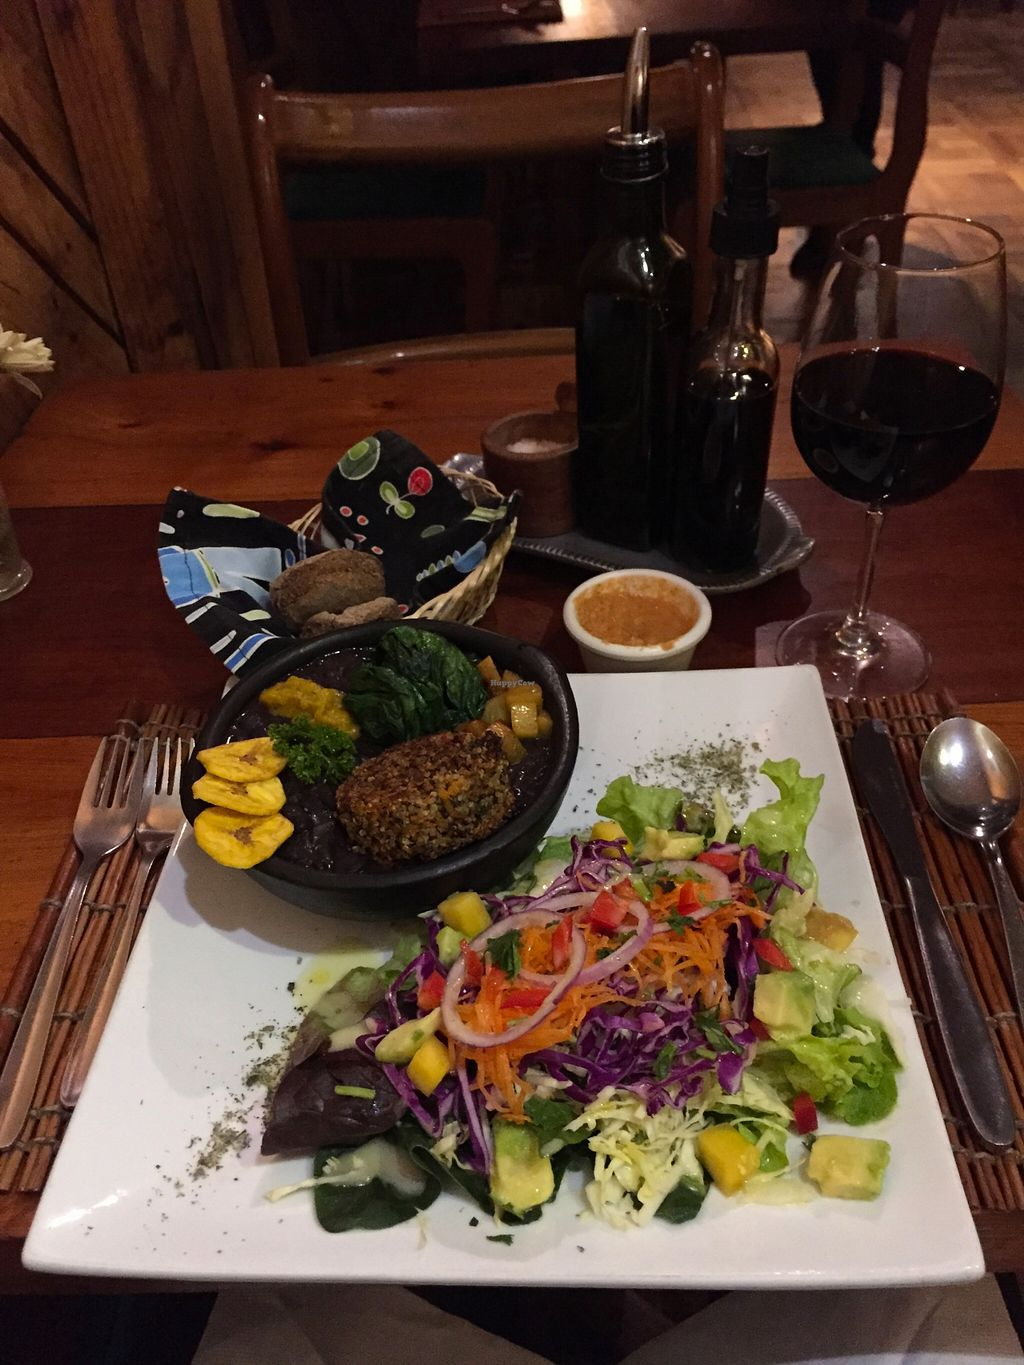 """Photo of El Huerto  by <a href=""""/members/profile/beckettthedog"""">beckettthedog</a> <br/>Habanero Vegano @ El Huerto in Stantiago Caribbean salad (advocate and mango with mojo dressing and mint) Spicy black beans with baked pineapple, plantain chips and quinoa croquette. Also included was a tasting of squash curry with coconut milk  <br/> September 1, 2015  - <a href='/contact/abuse/image/2693/116075'>Report</a>"""